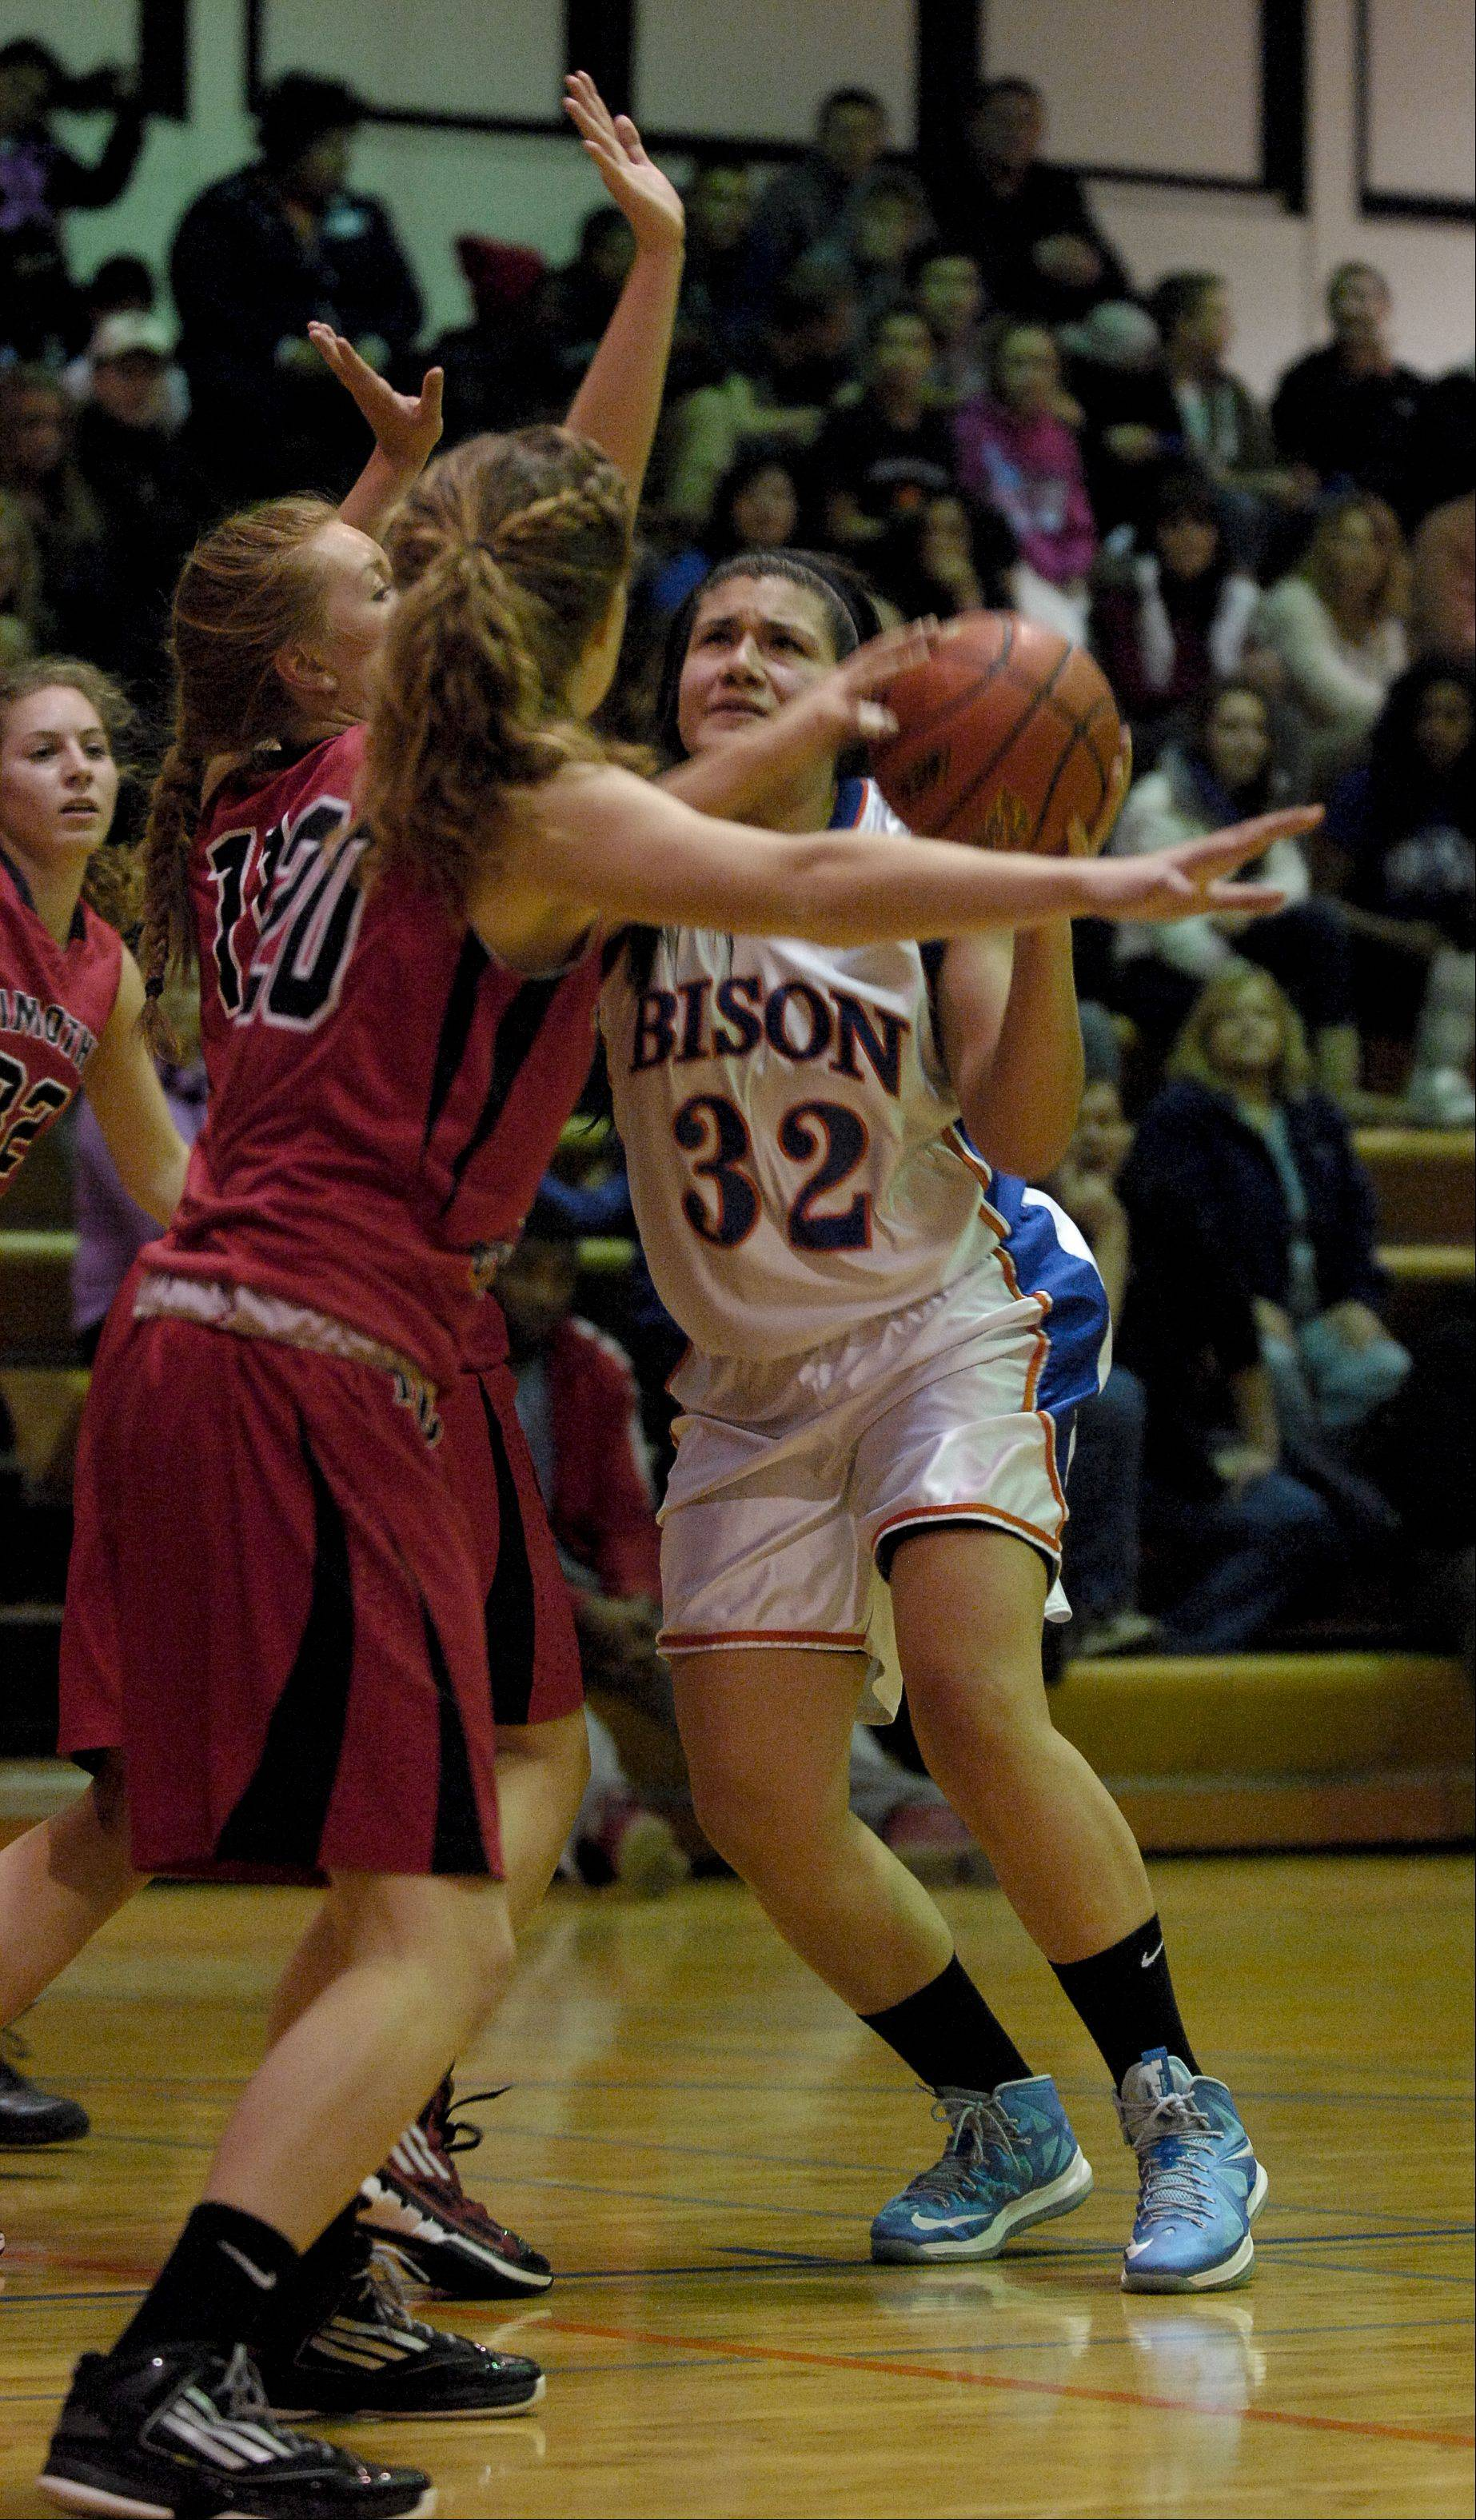 Fenton High School hosted Timothy Christian Thursday night for girls basketball.